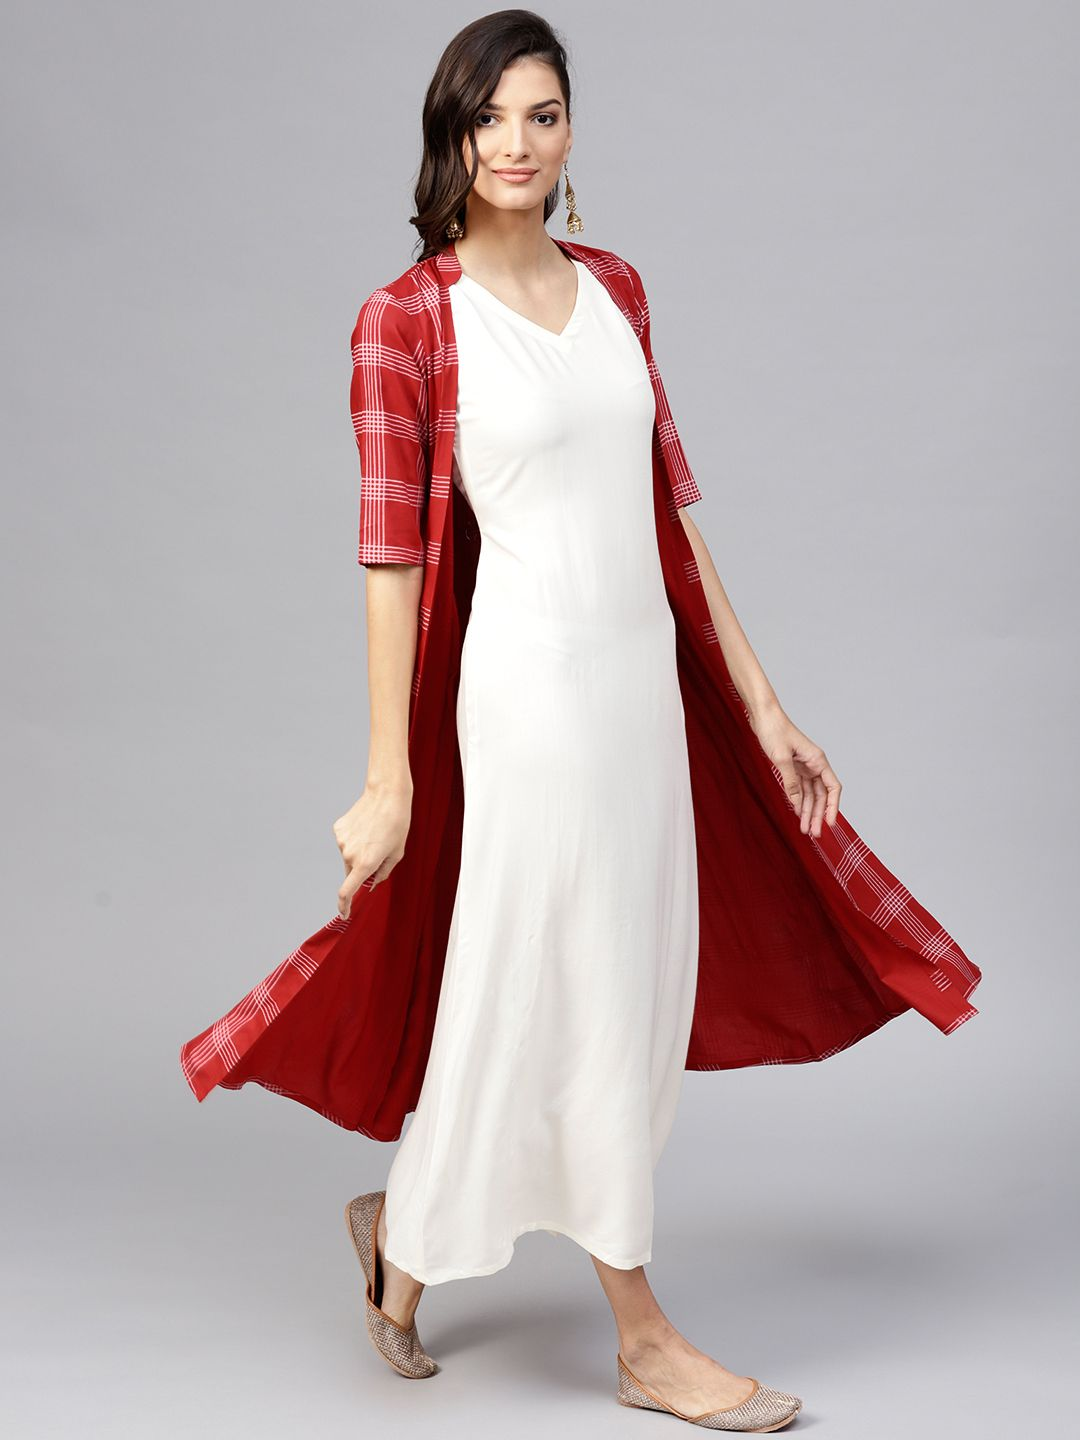 1cff762561 Buy Libas Women Off White & Red Solid Maxi Dress - Dresses for Women  7719027 | Myntra